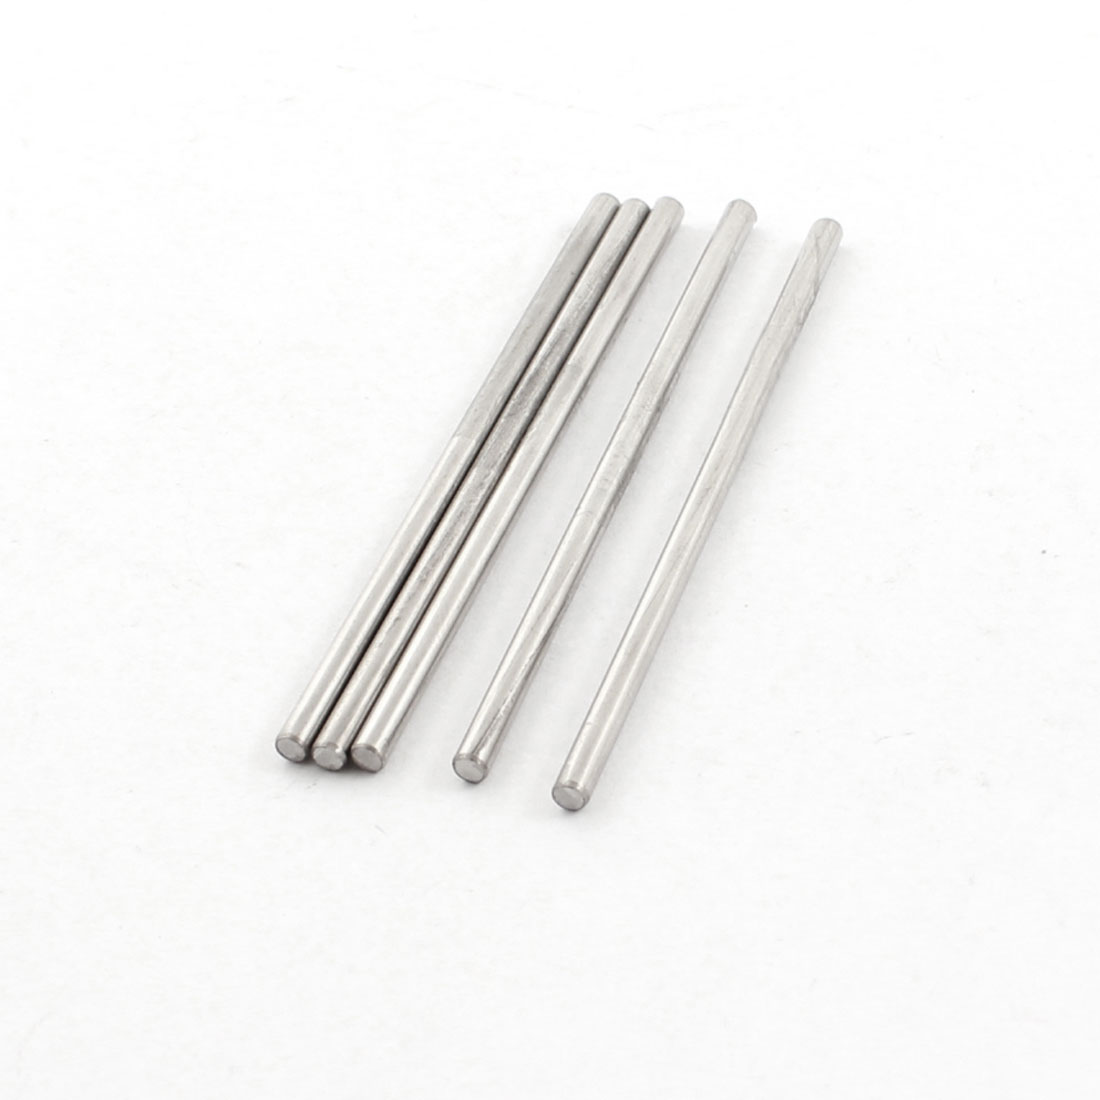 5 Pcs 2.5mm x 60mm Stainless Steel Round Rod Bar Stick for DIY RC Car